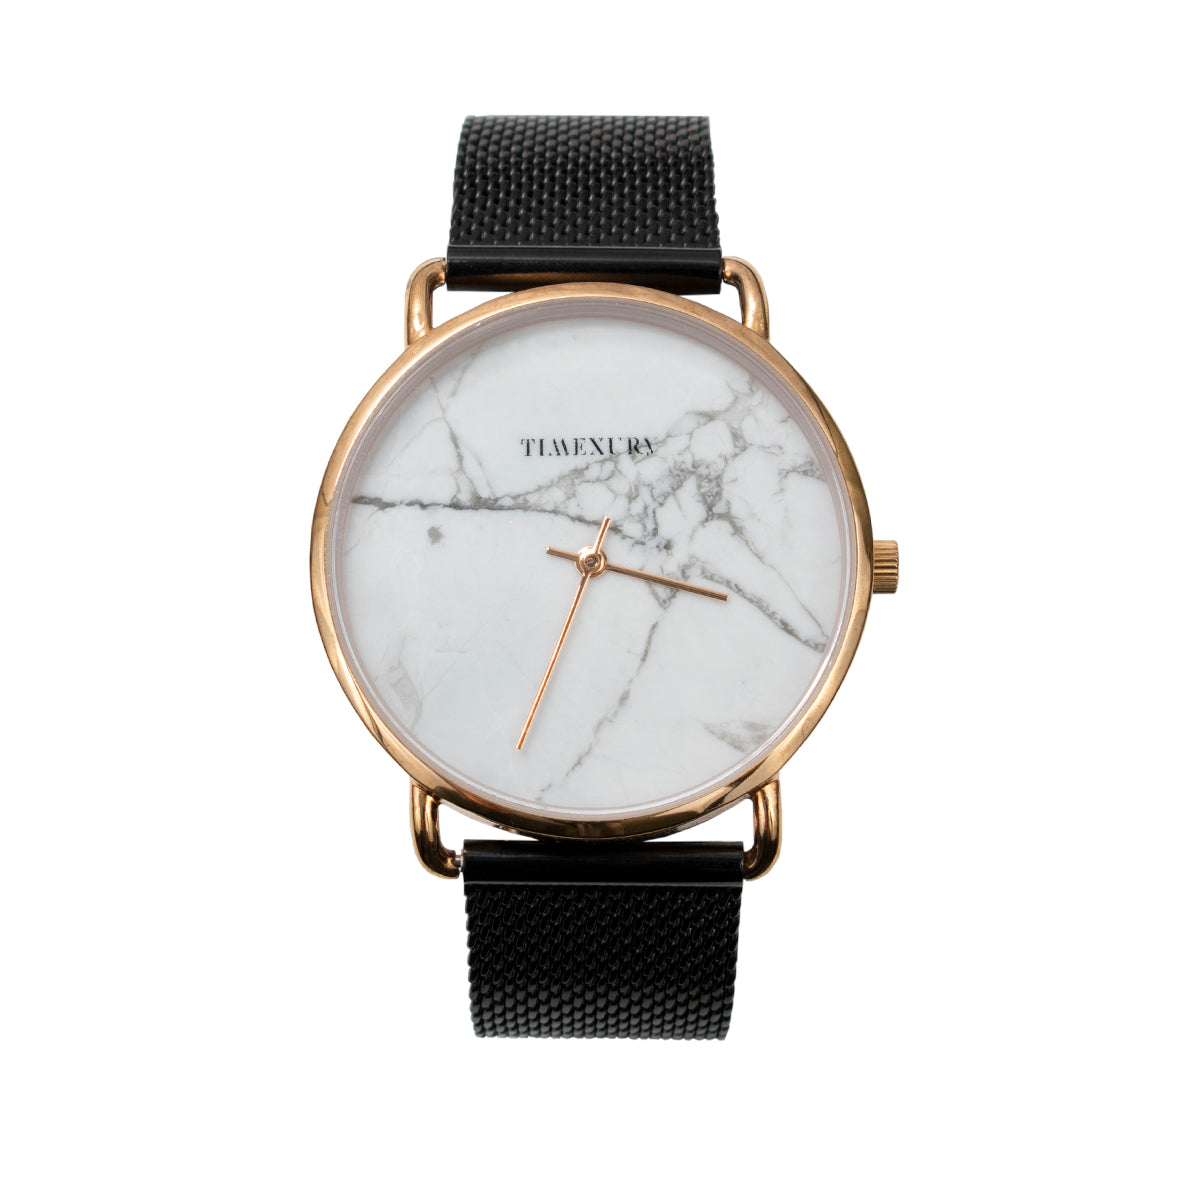 Marble Black - TimexuryWatches